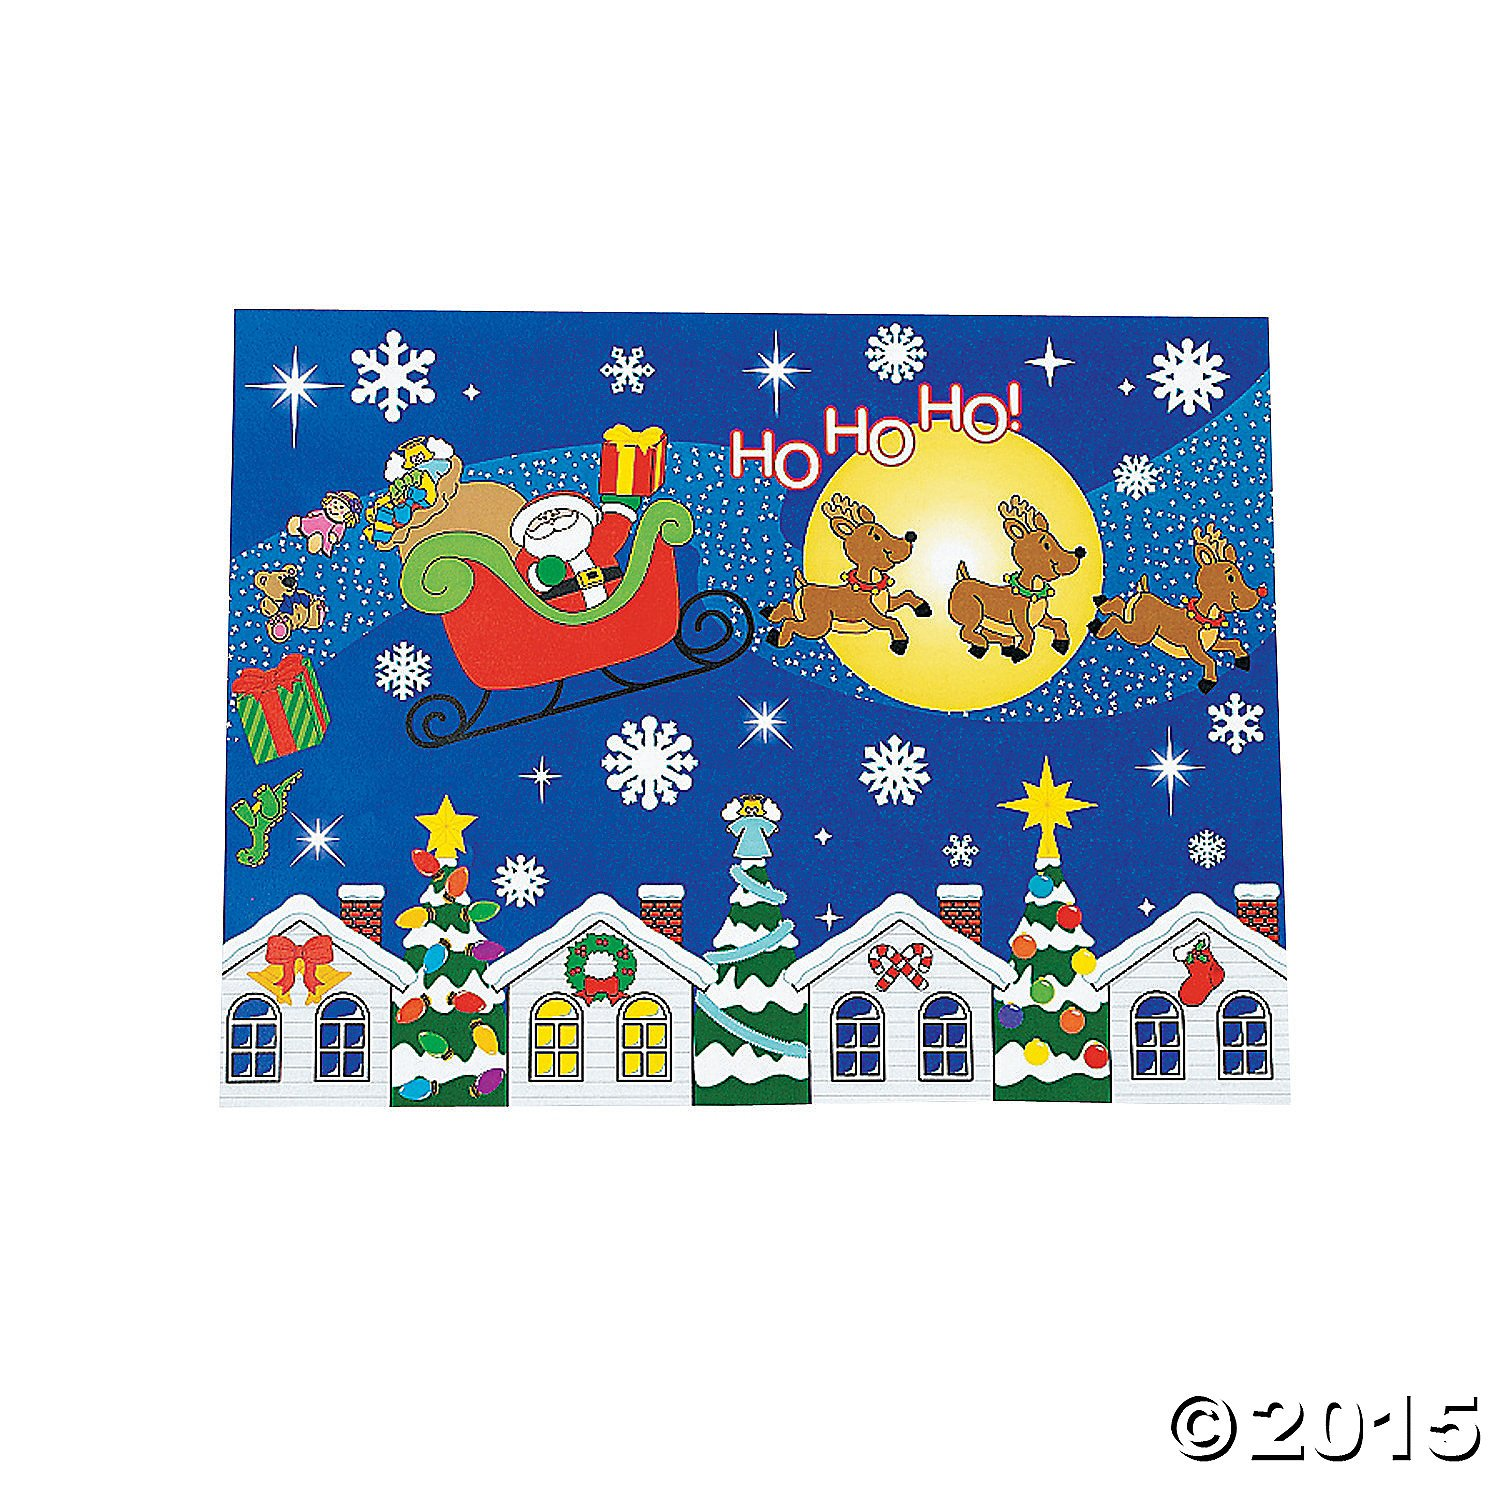 Design Your Own Merry Christmas To All Sticker Scenes - Stickers & Labels & Sticker Scenes